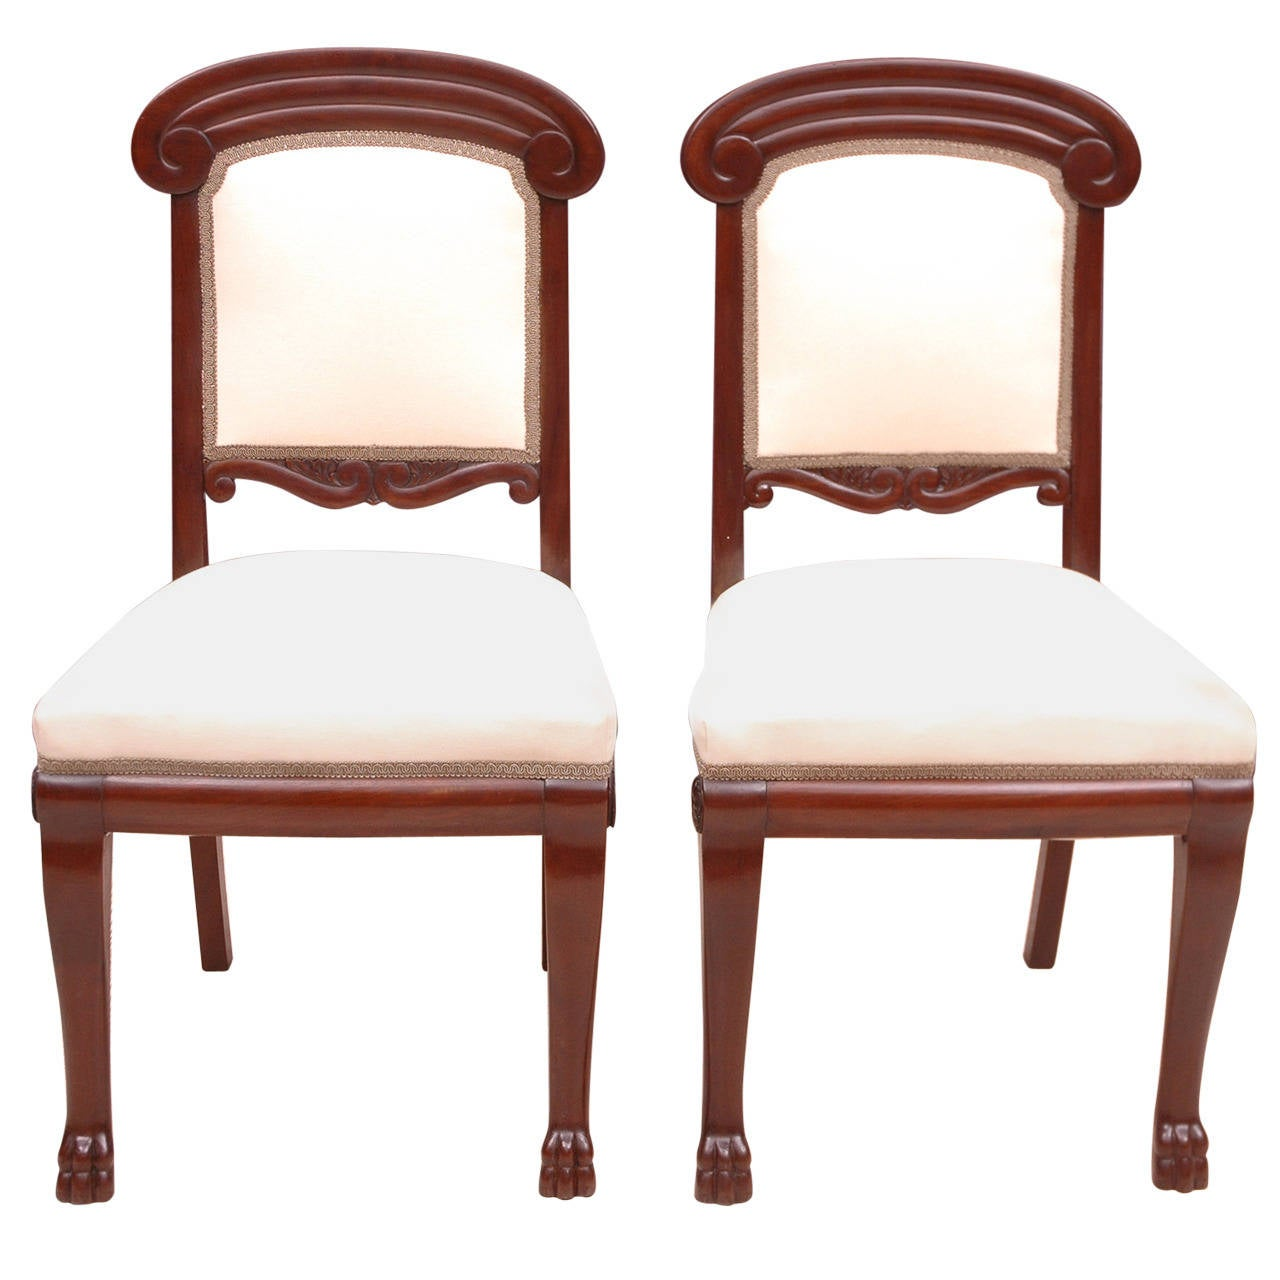 1910 American Furniture Styles: Pair Of Baltic Empire-Style Chairs In Mahogany With